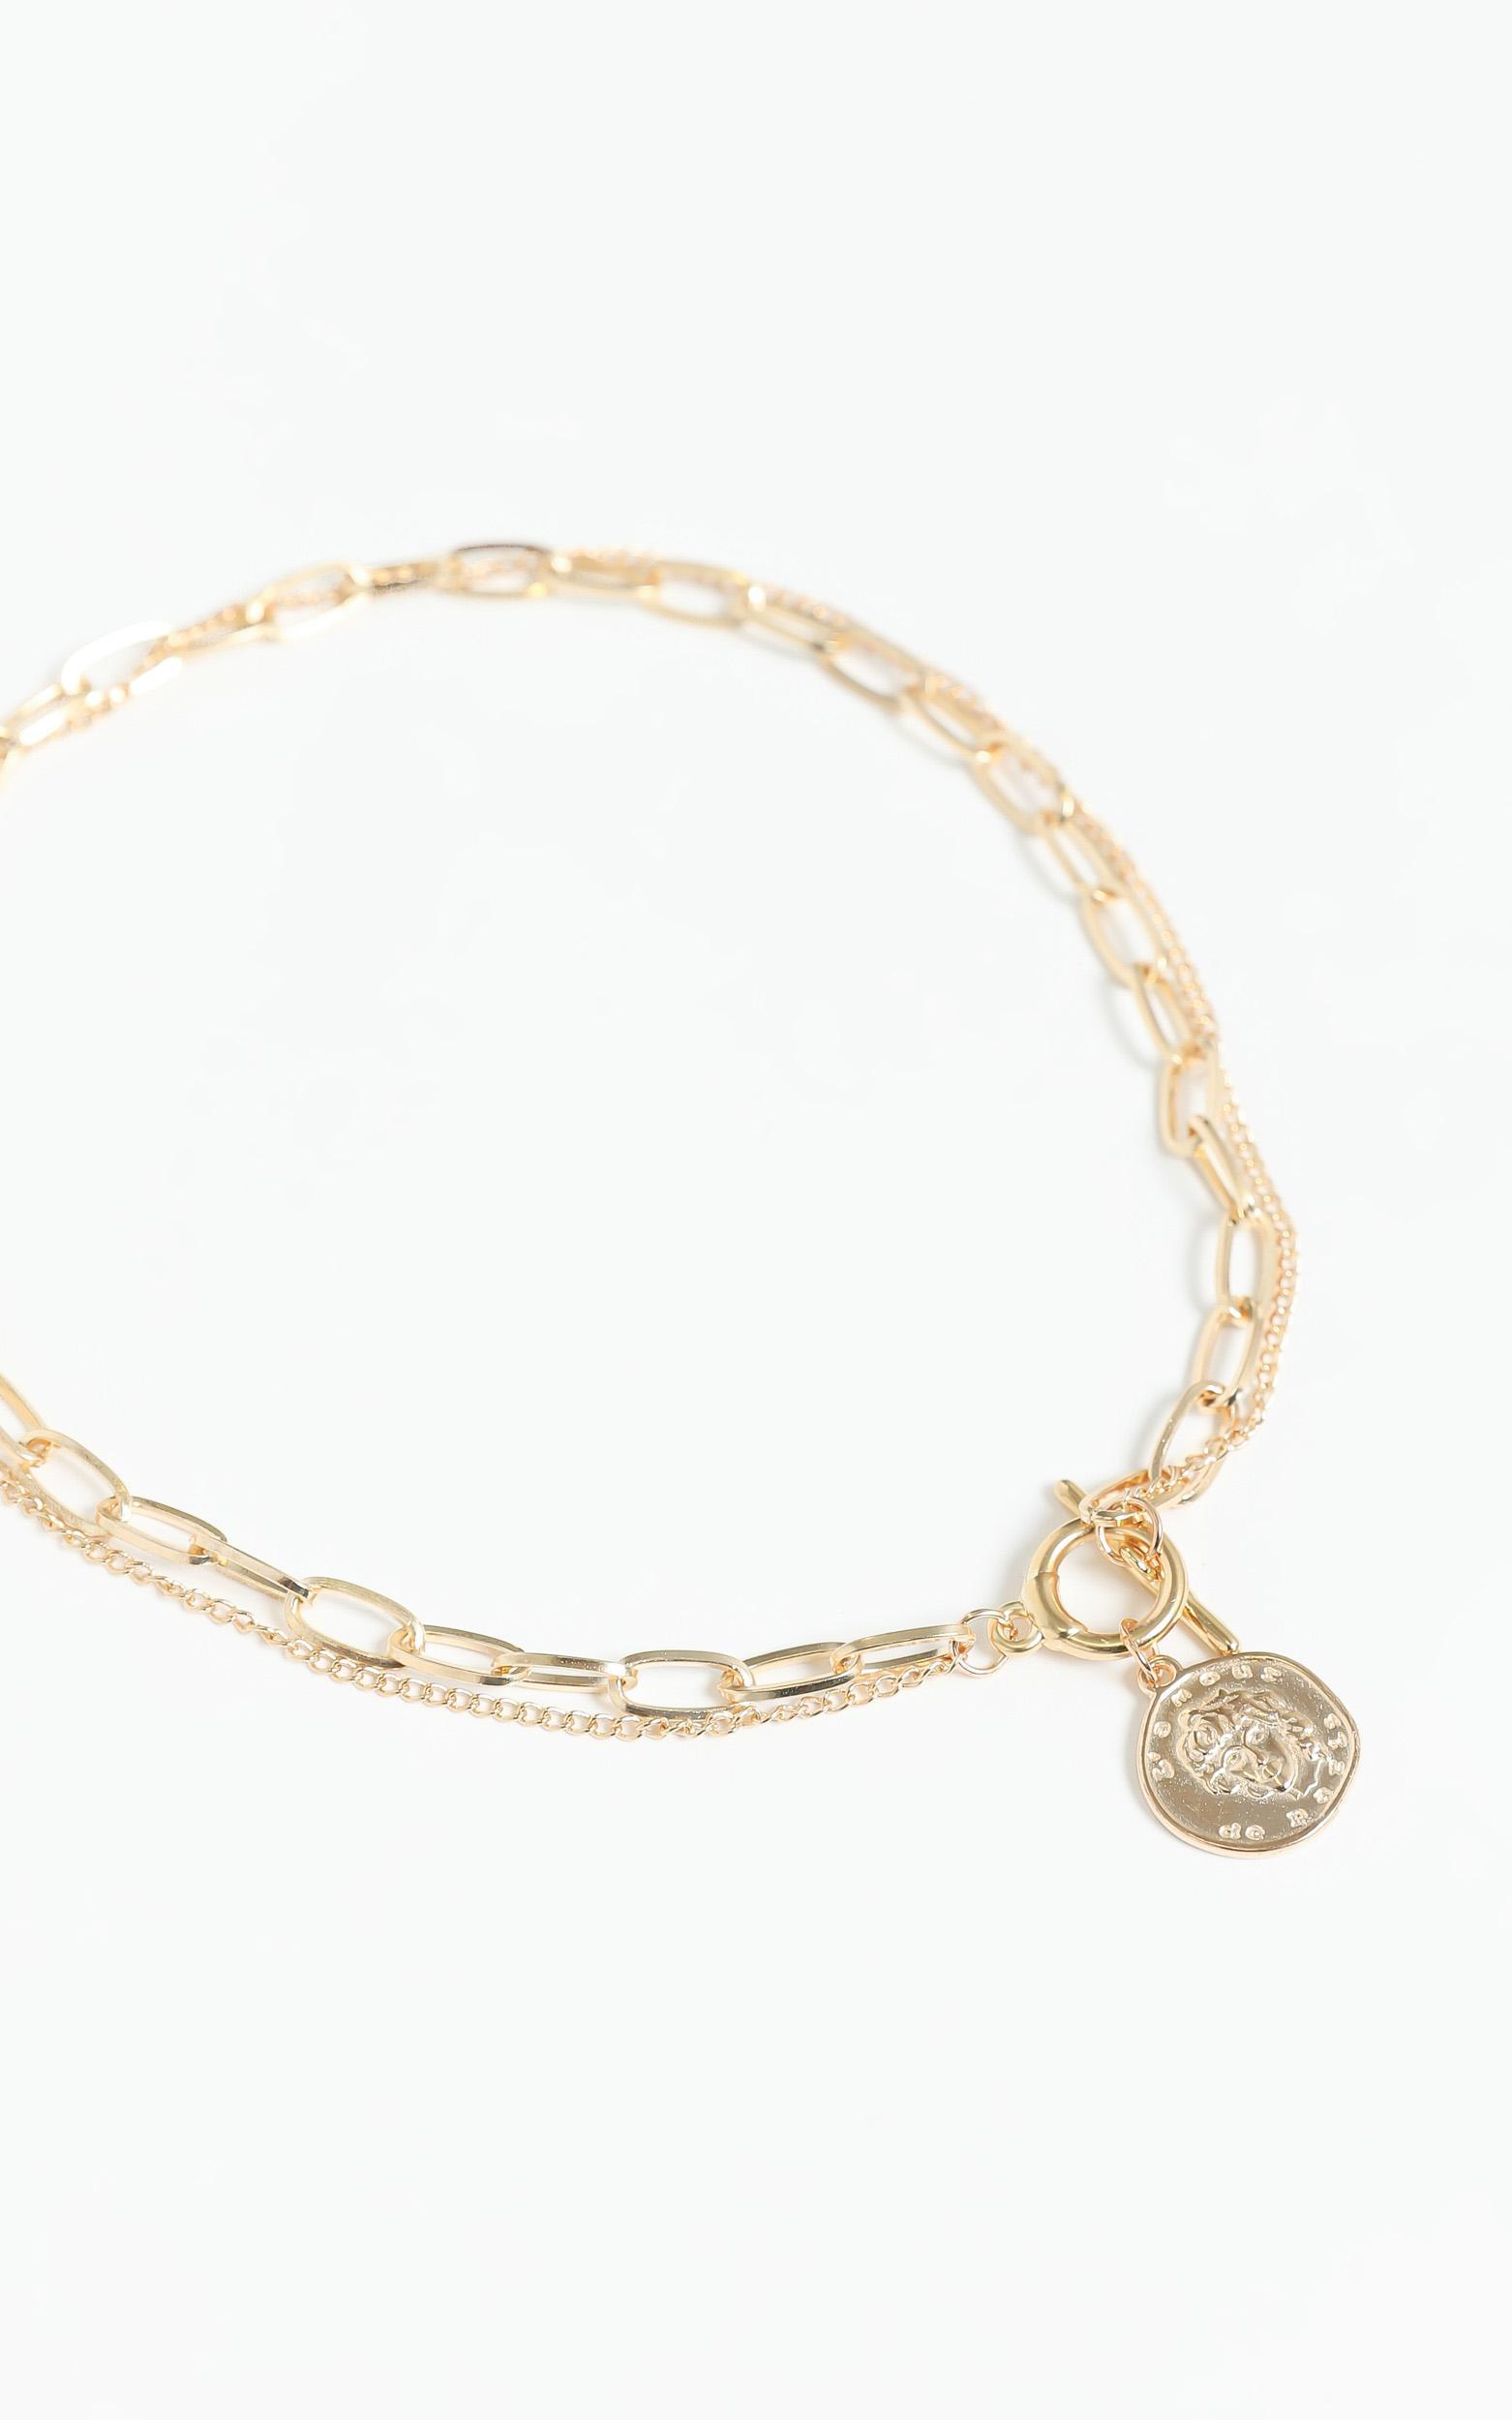 Gold Coin Necklace in Gold, , hi-res image number null